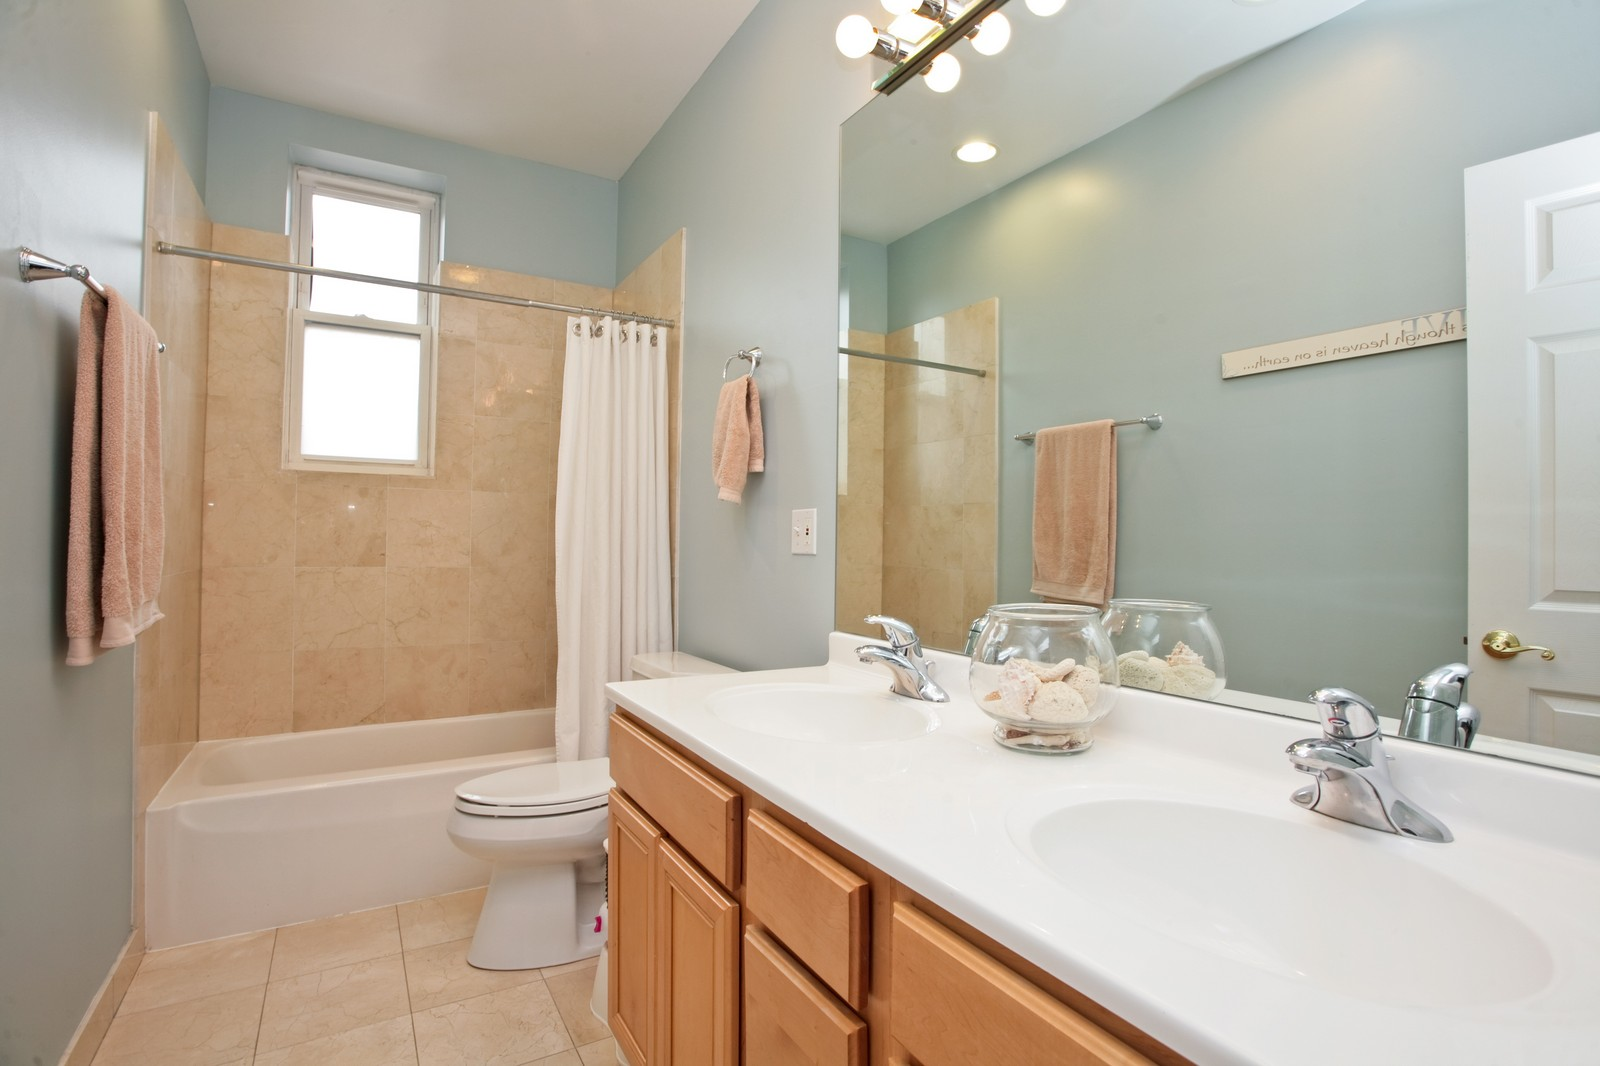 Real Estate Photography - 1700 W Chicago Ave, Unit B, Chicago, IL, 60622 - Bathroom